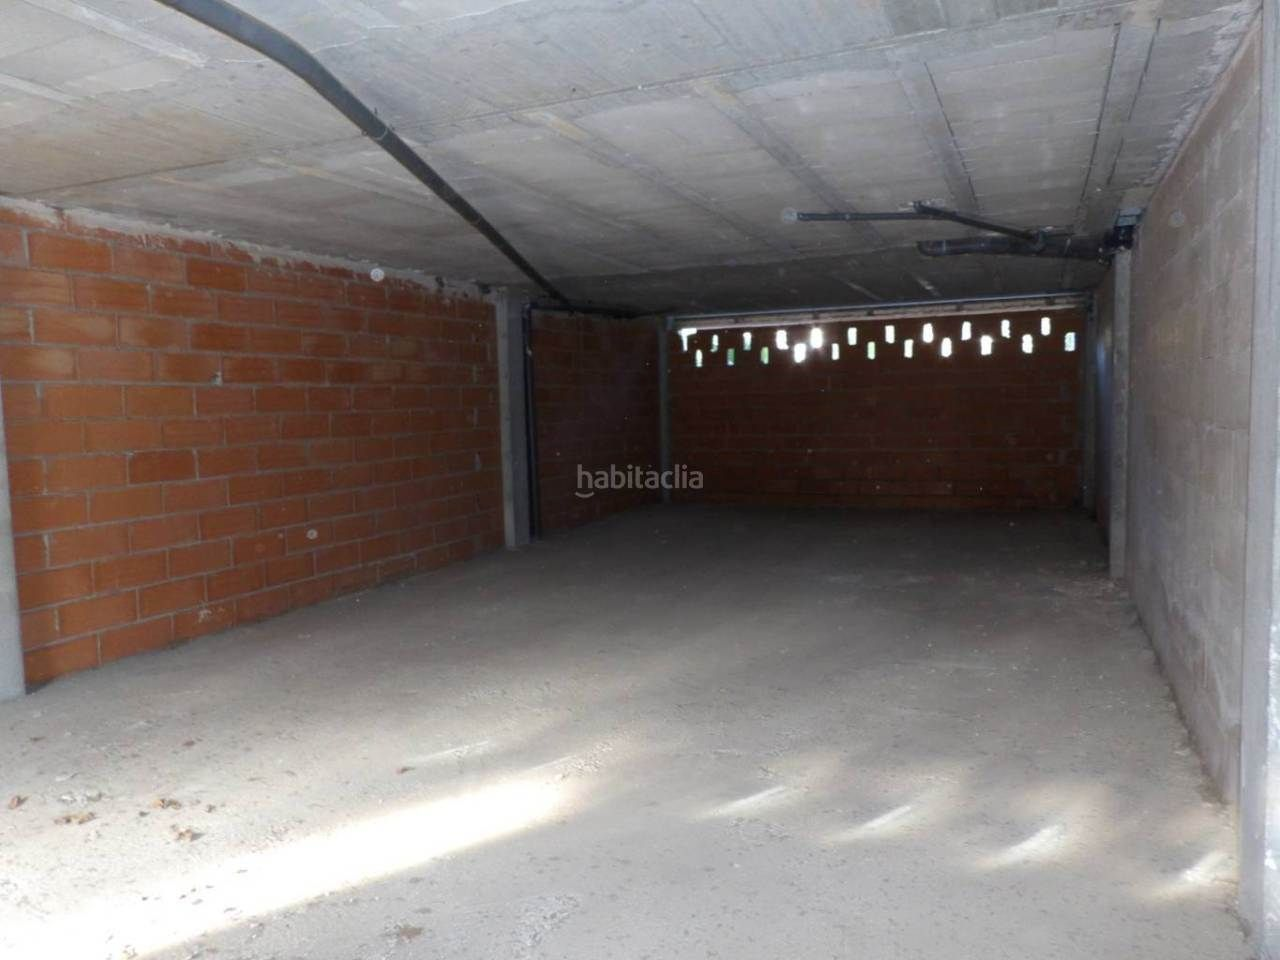 Local Comercial en Papa Luna. Local comercial, plazas de parking y patio